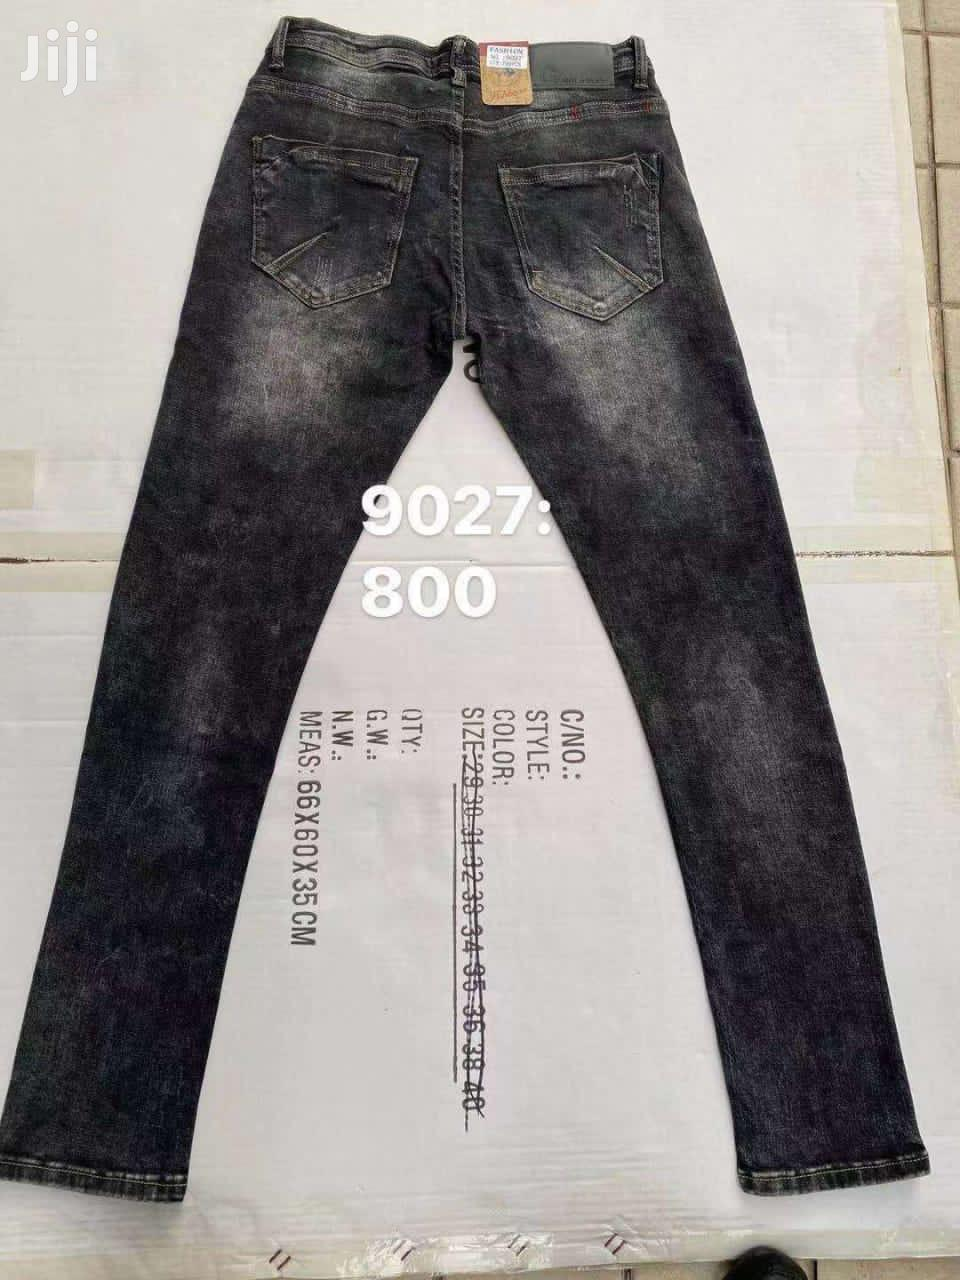 Jeans Available All Sizes Designer